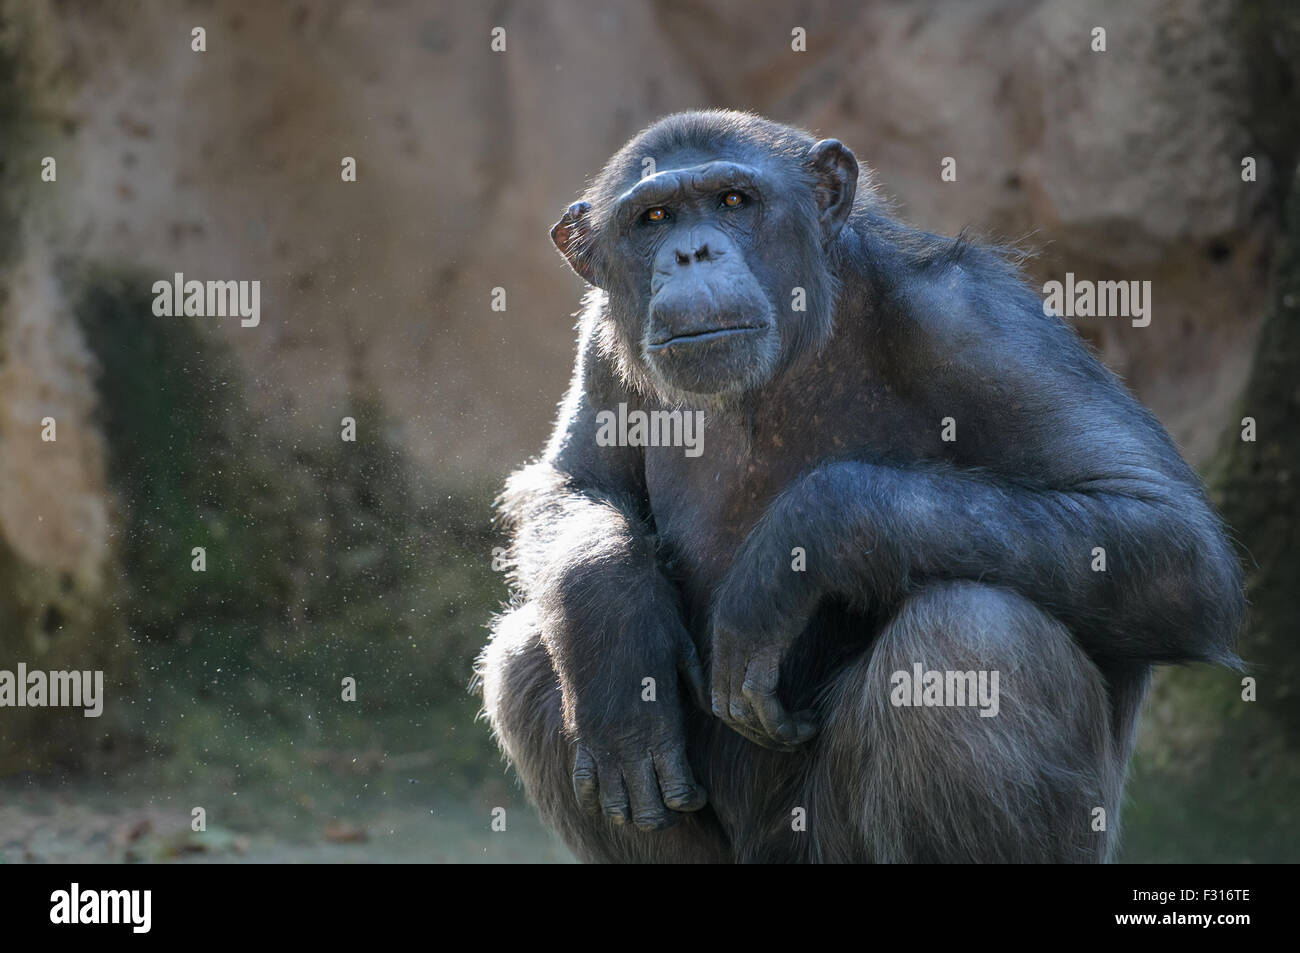 Chimpanzee looking at something with extreme attention - Stock Image